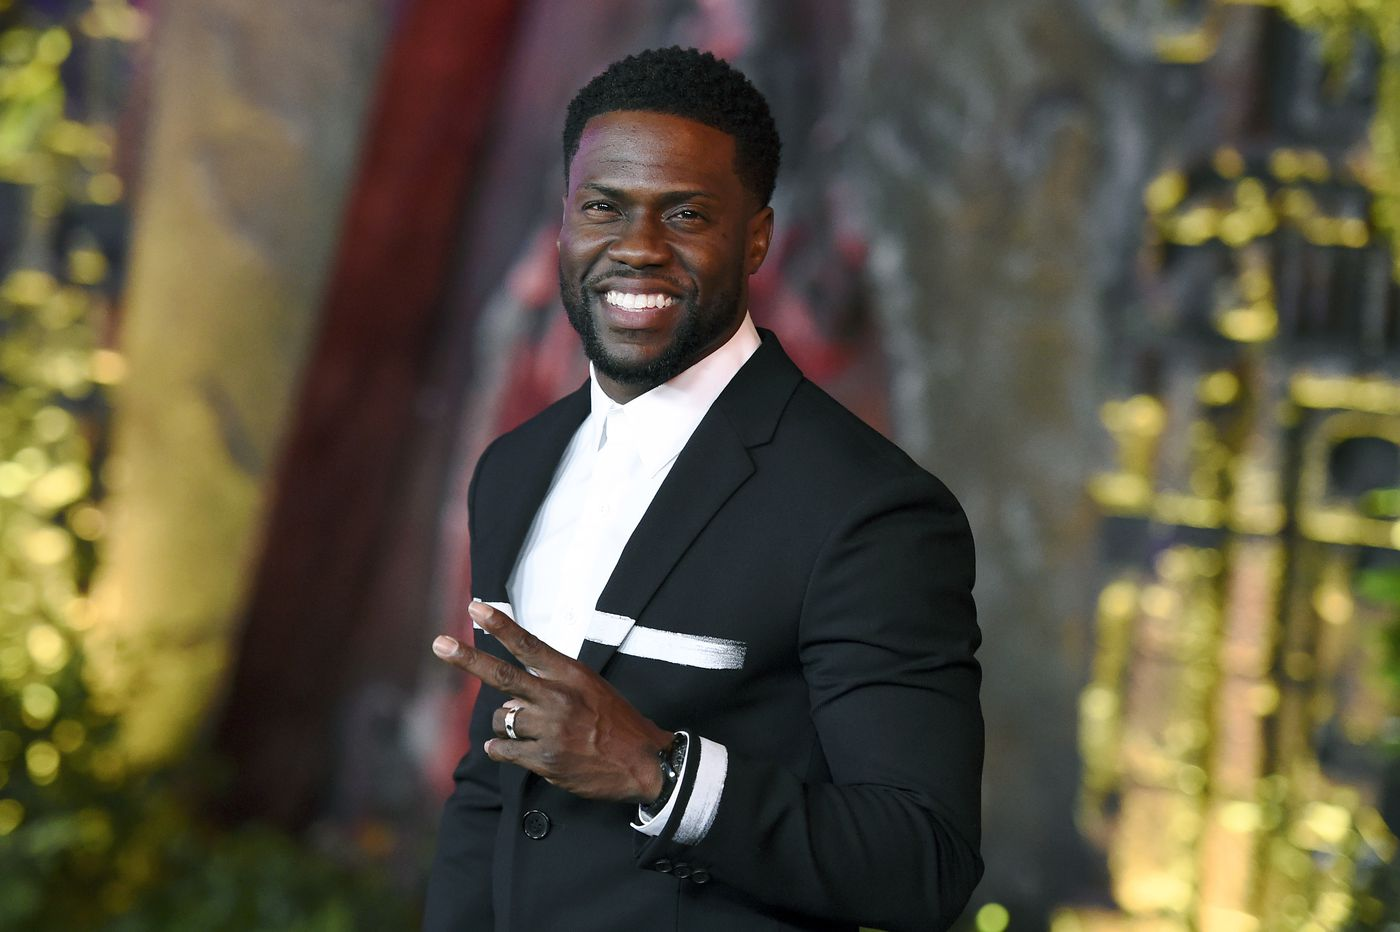 After Kevin Hart steps down from hosting the Academy Awards, here are 6 other Oscar controversies